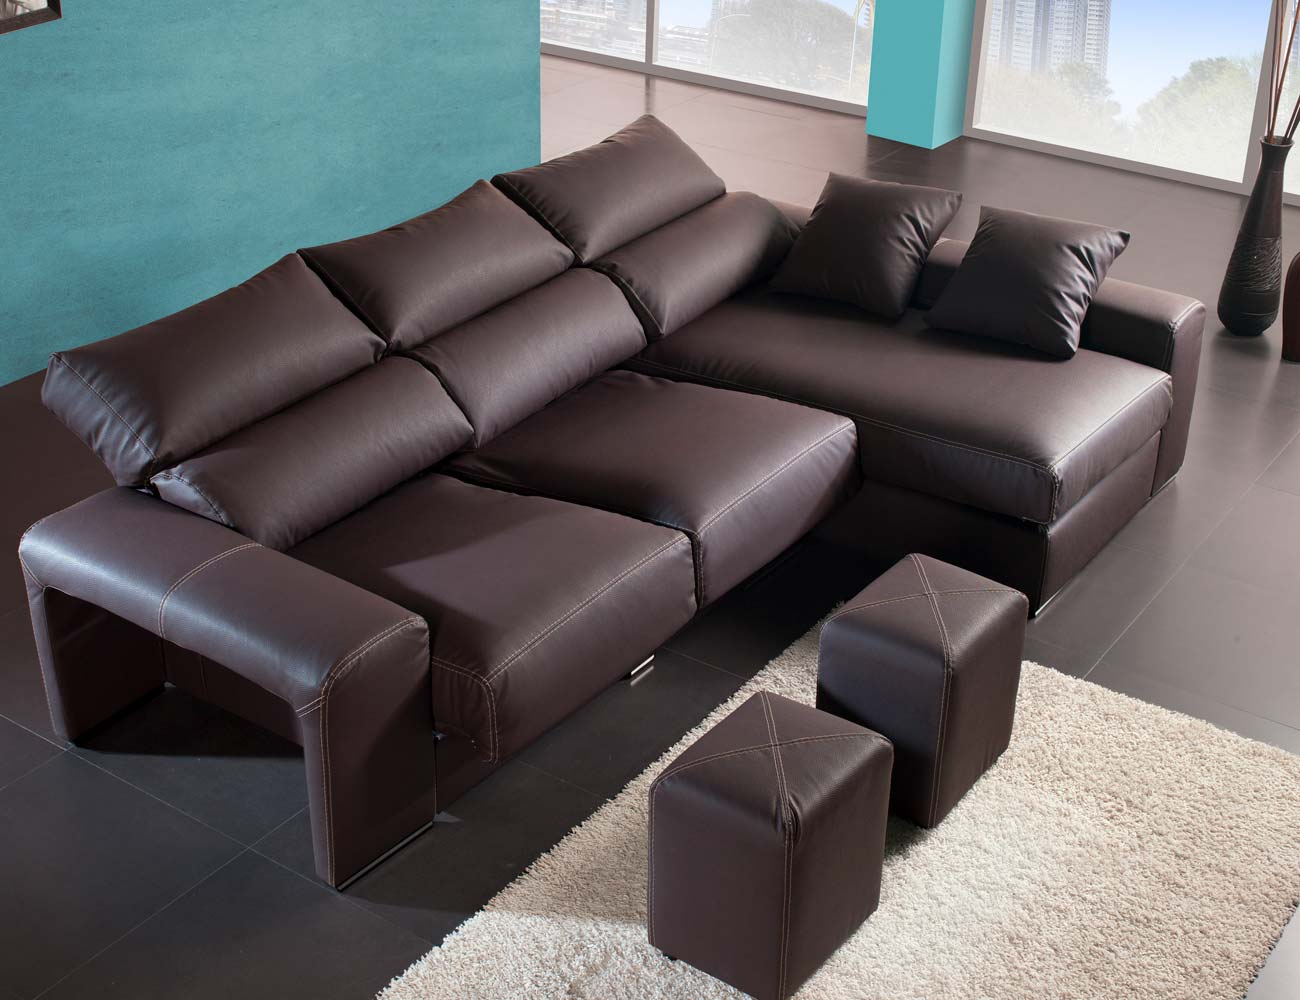 Sofa chaiselongue moderno polipiel chocolate poufs taburetes55